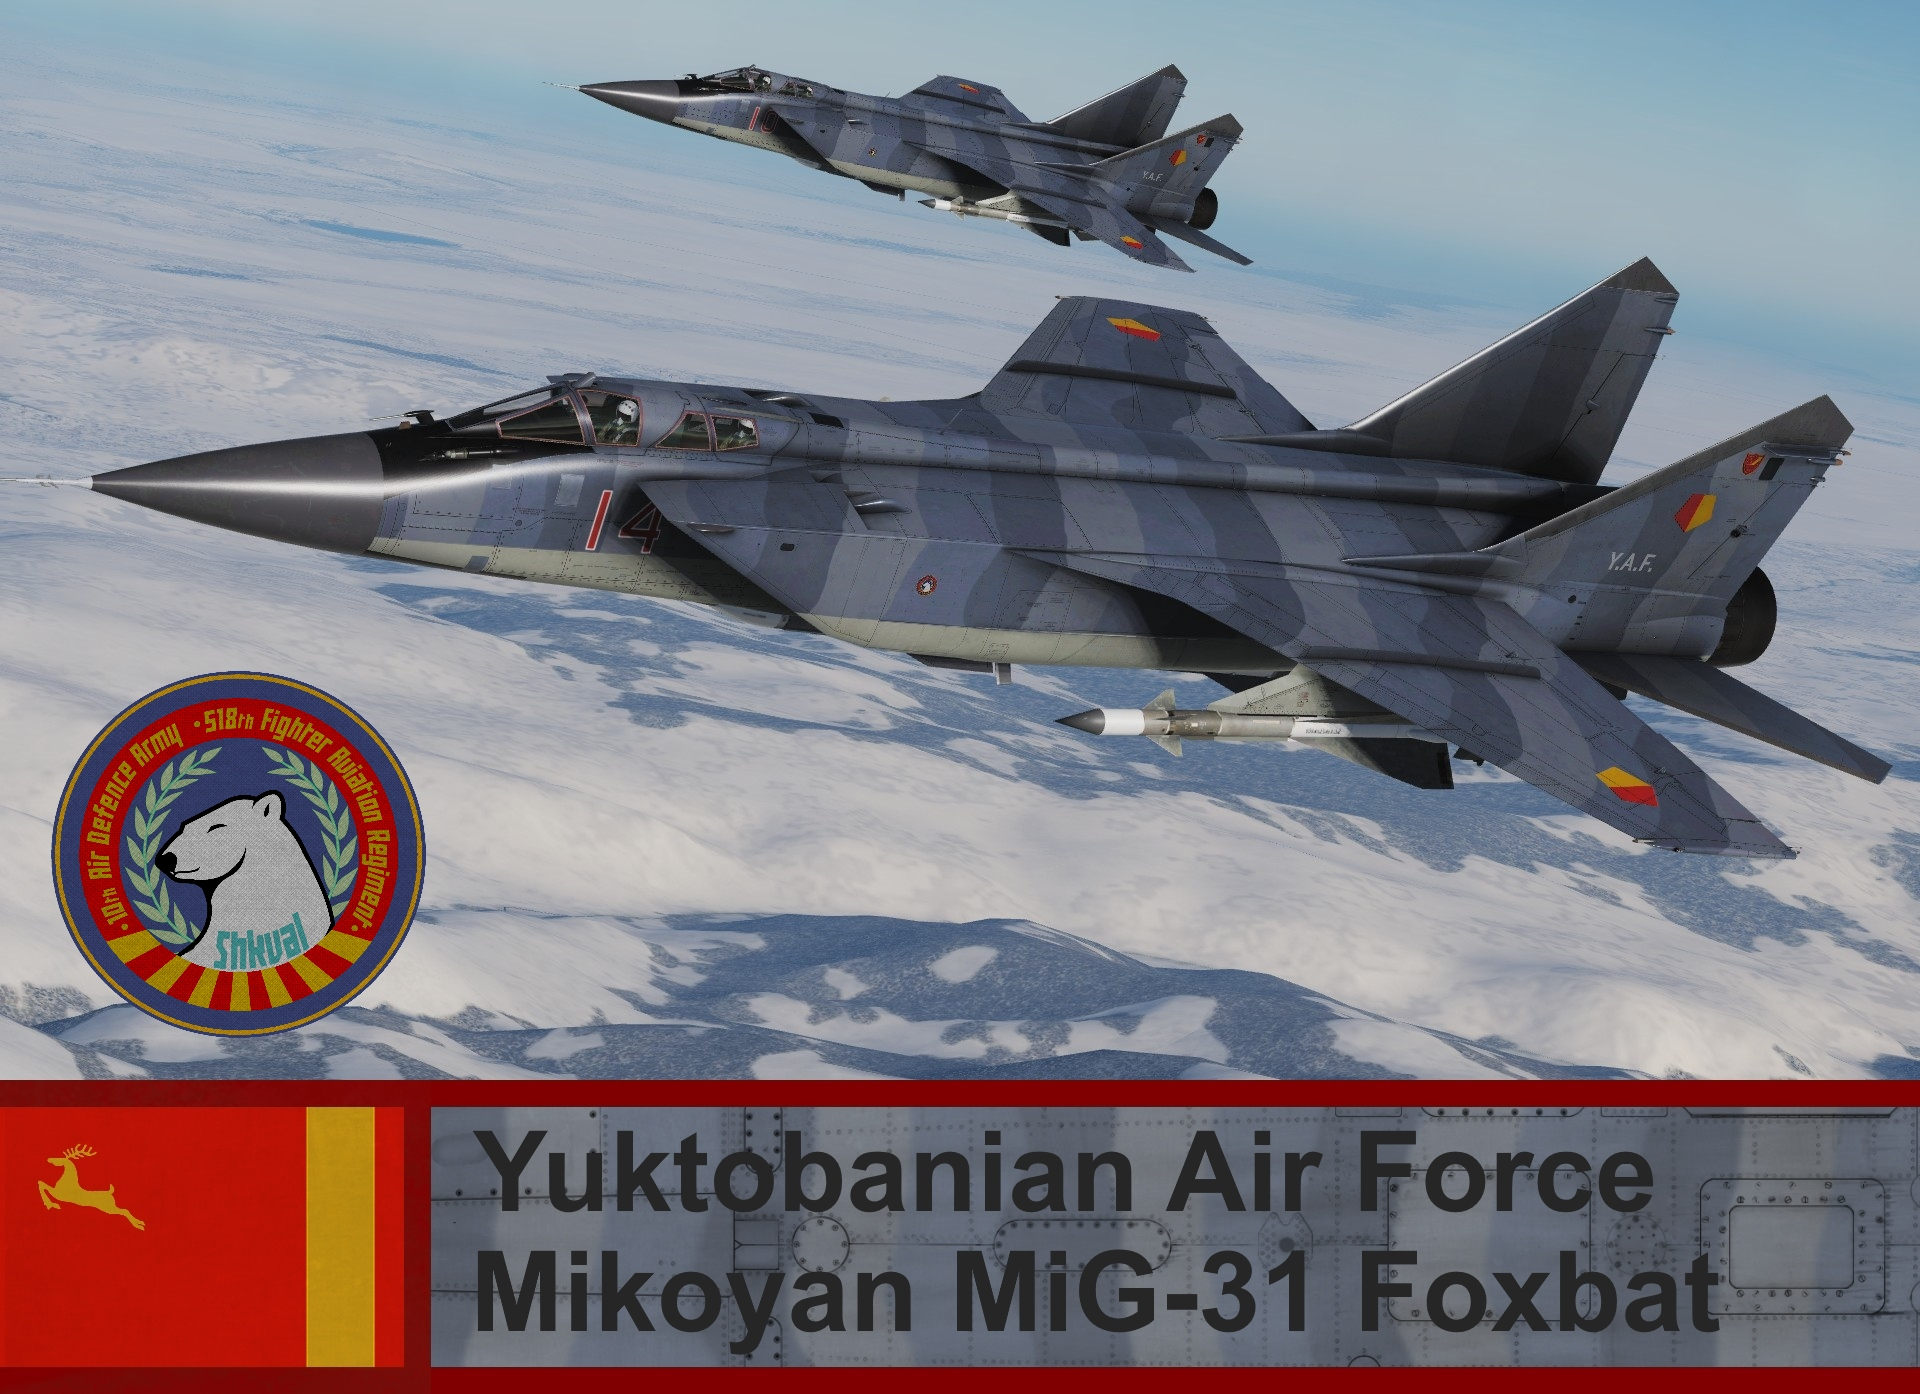 Yuktobanian Air Force Mikoyan MiG-31 Foxbat - Ace Combat (518th FAR)